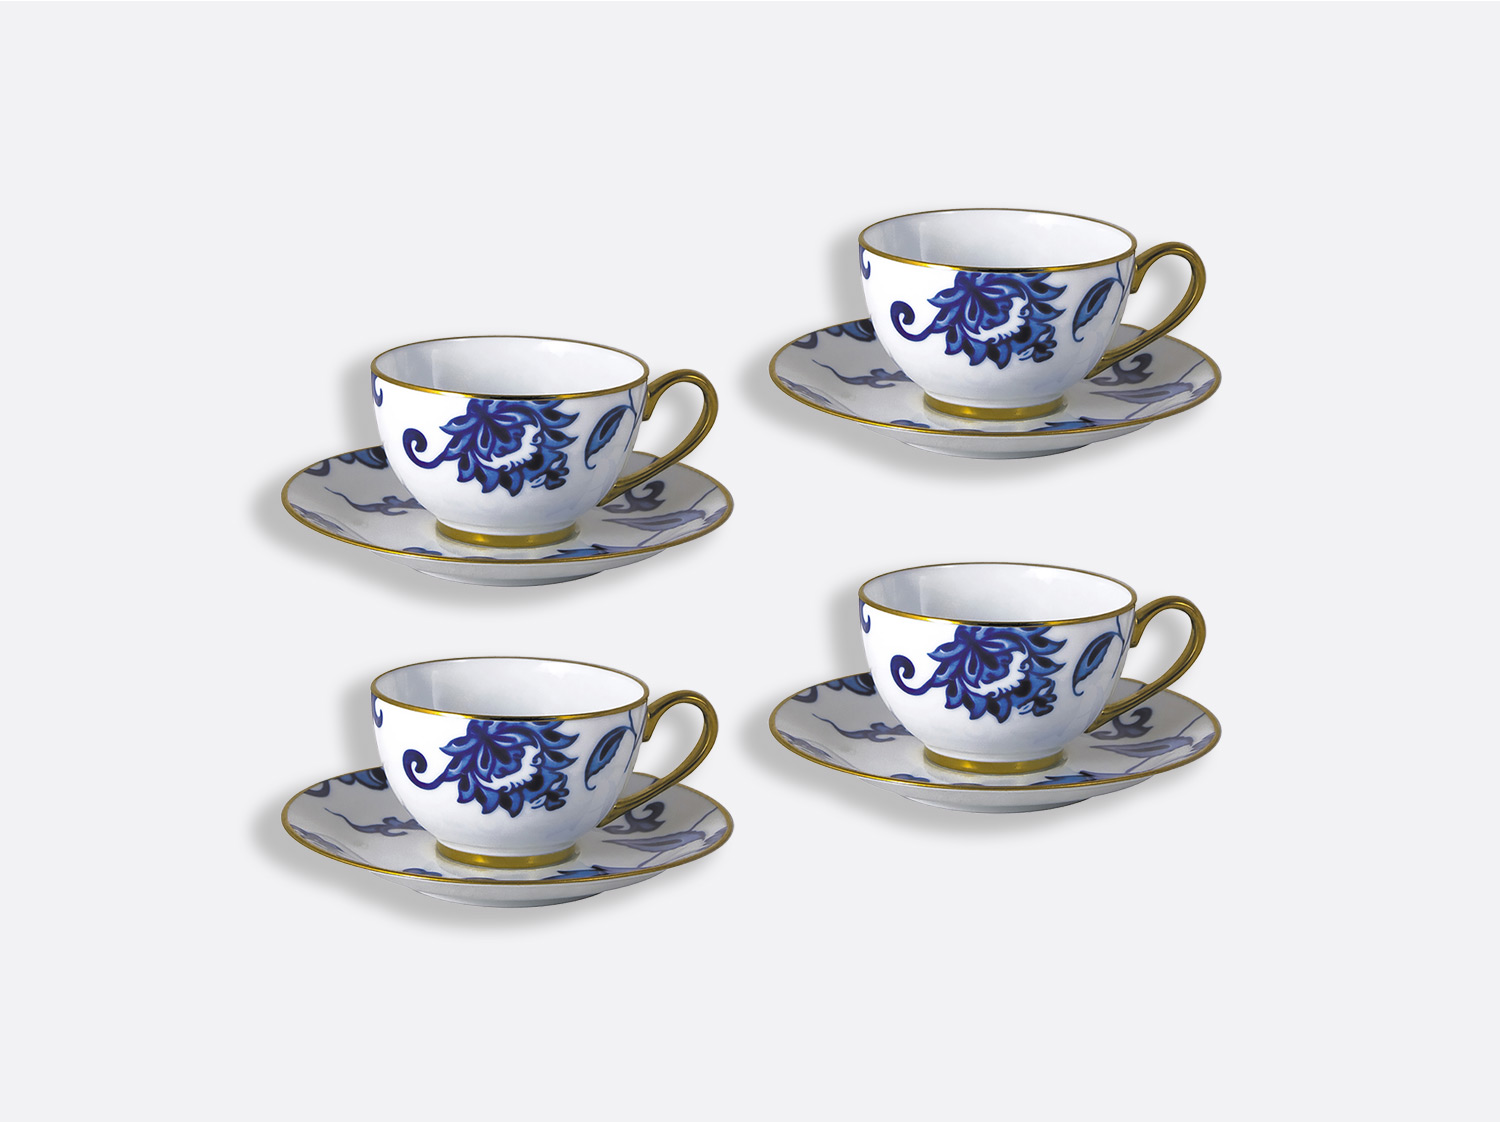 Coffret de tasses & soucoupes thé 13 cl - Coffret de 4 en porcelaine de la collection Prince bleu Bernardaud